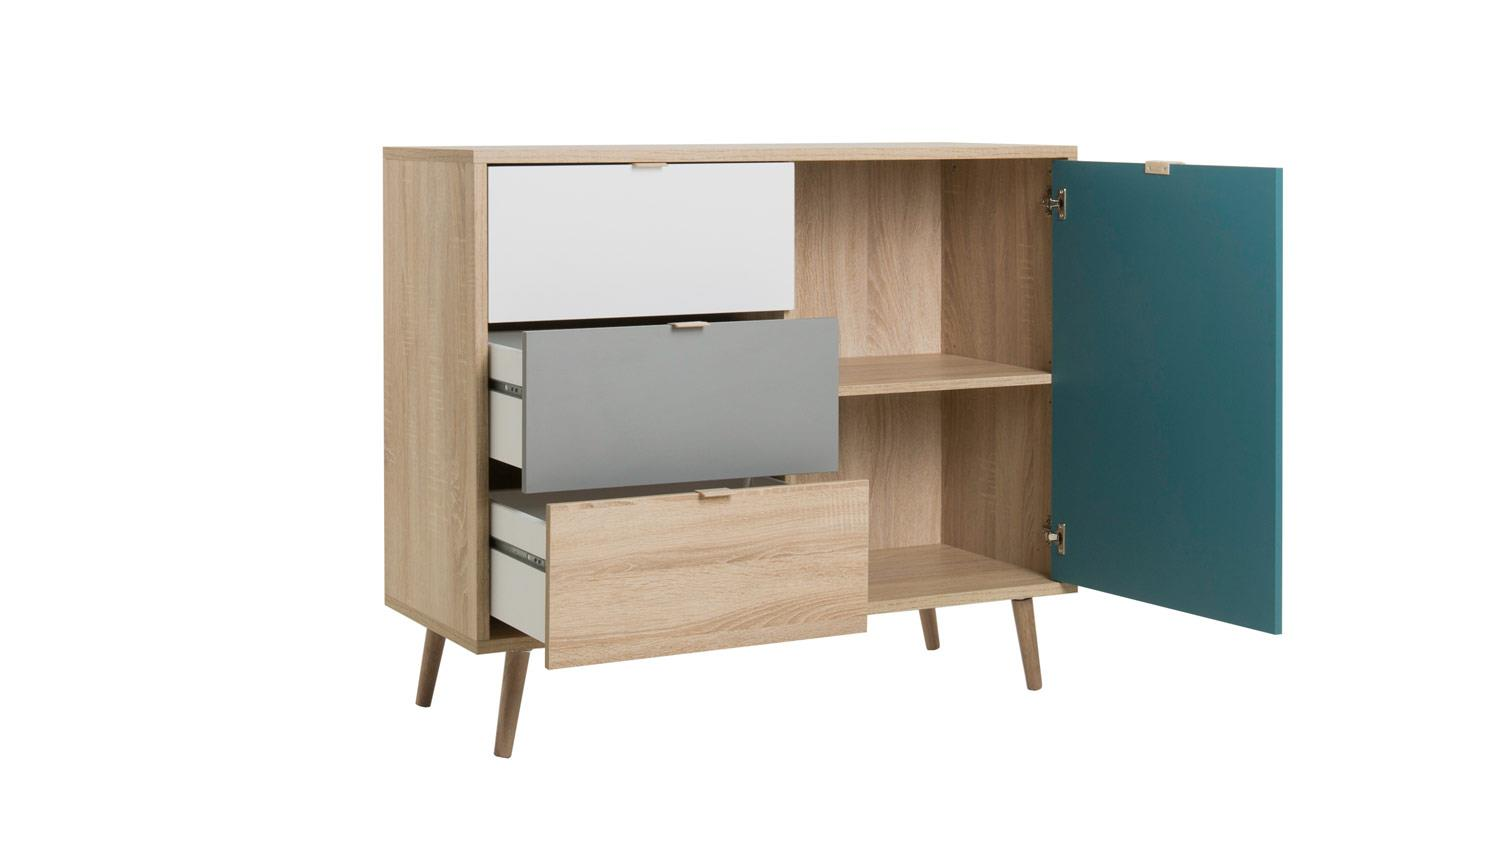 kommode cuba sideboard anrichte sonoma eiche wei grau petrol 103x85. Black Bedroom Furniture Sets. Home Design Ideas